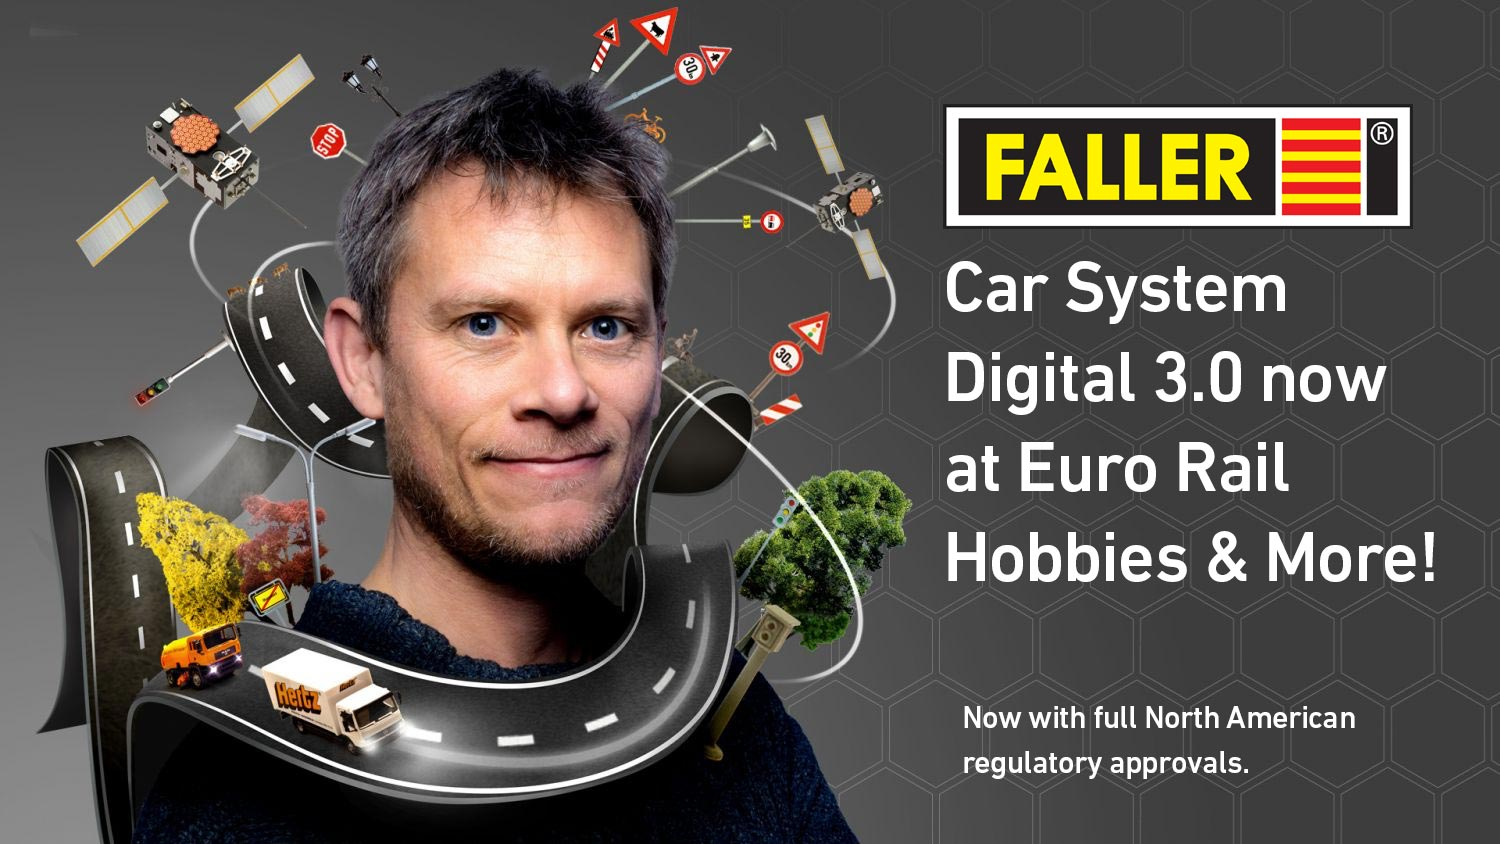 Faller Car System Digital 3.0 is here!